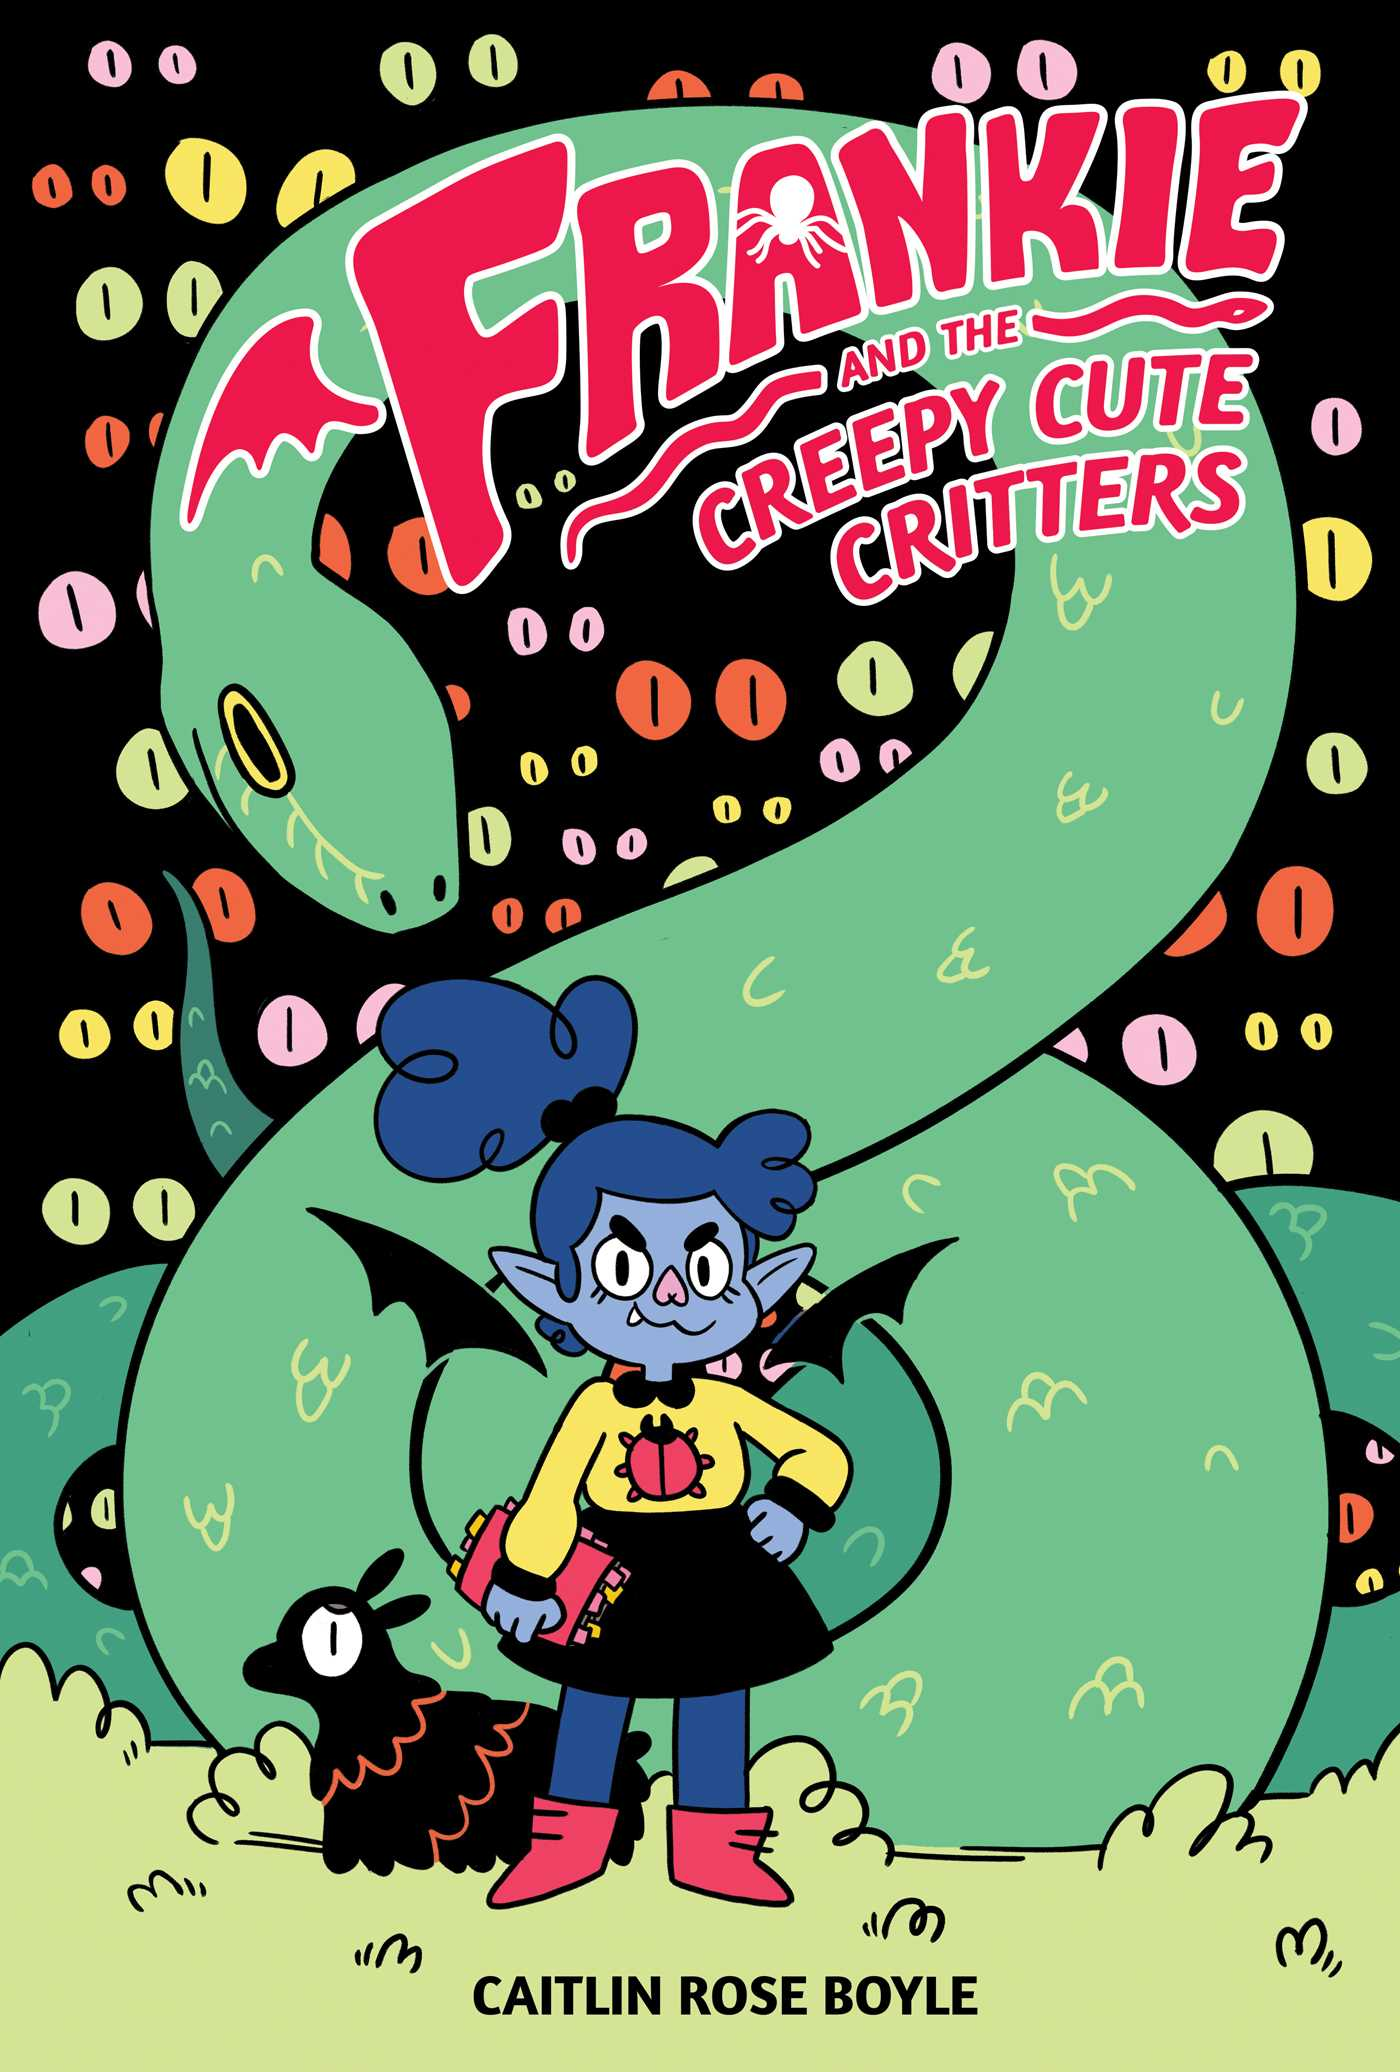 Frankie and the Creepy Cute Critters, Caitlin Rose Boyle, Green, Eyes, Snake, Girl, Wing, Faerie, Pet, Animals, Red Letters, Graphic Novel, Cute, Animals, Field Guide, Fantasy